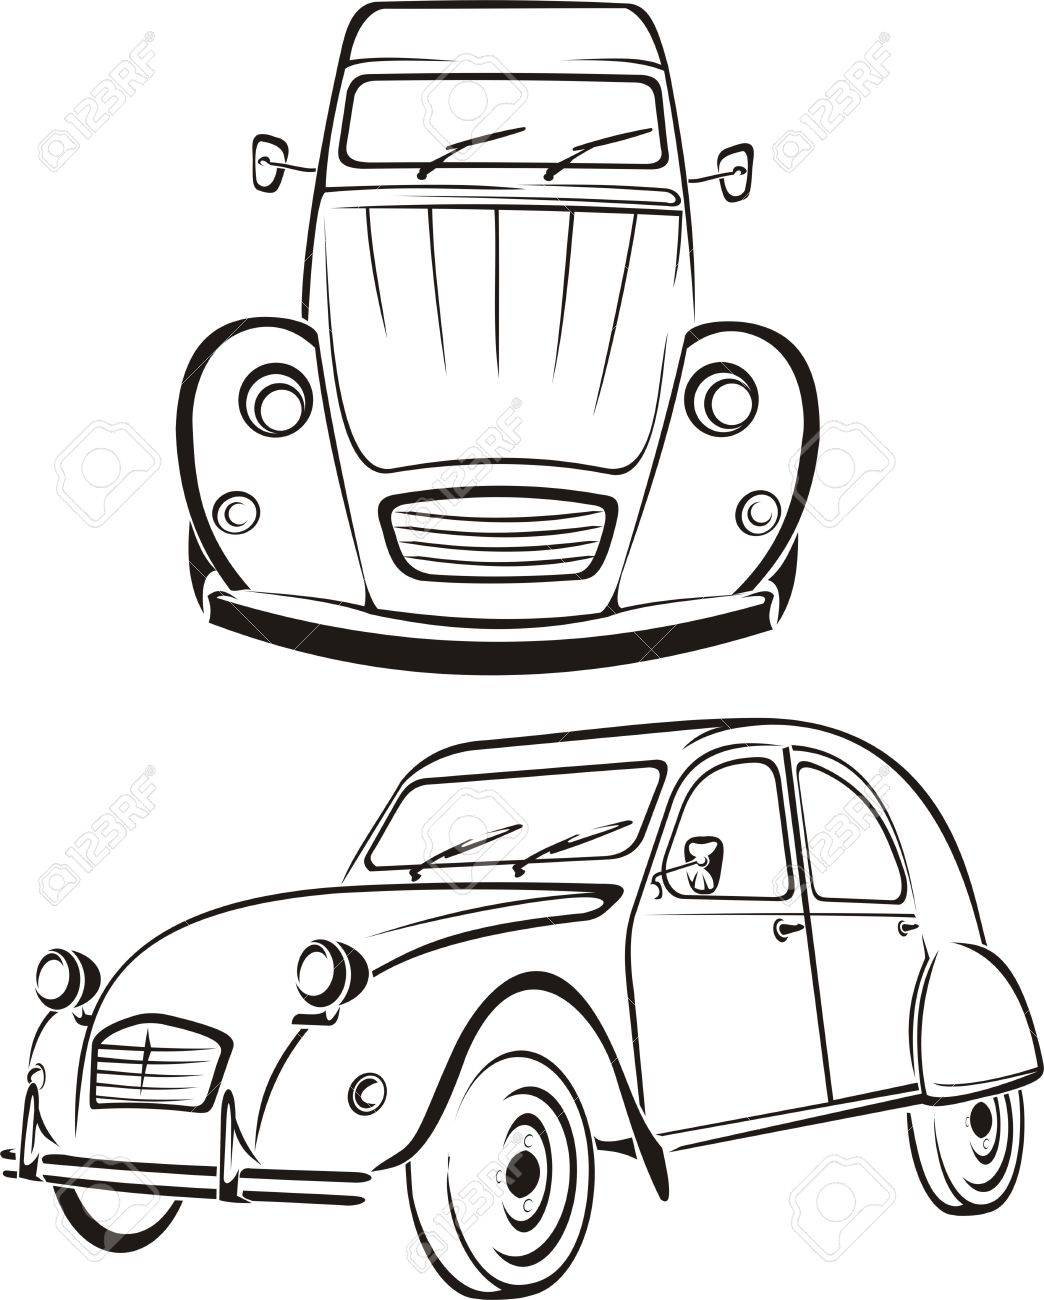 Luxury drawings of old cars inspiration wiring diagram ideas